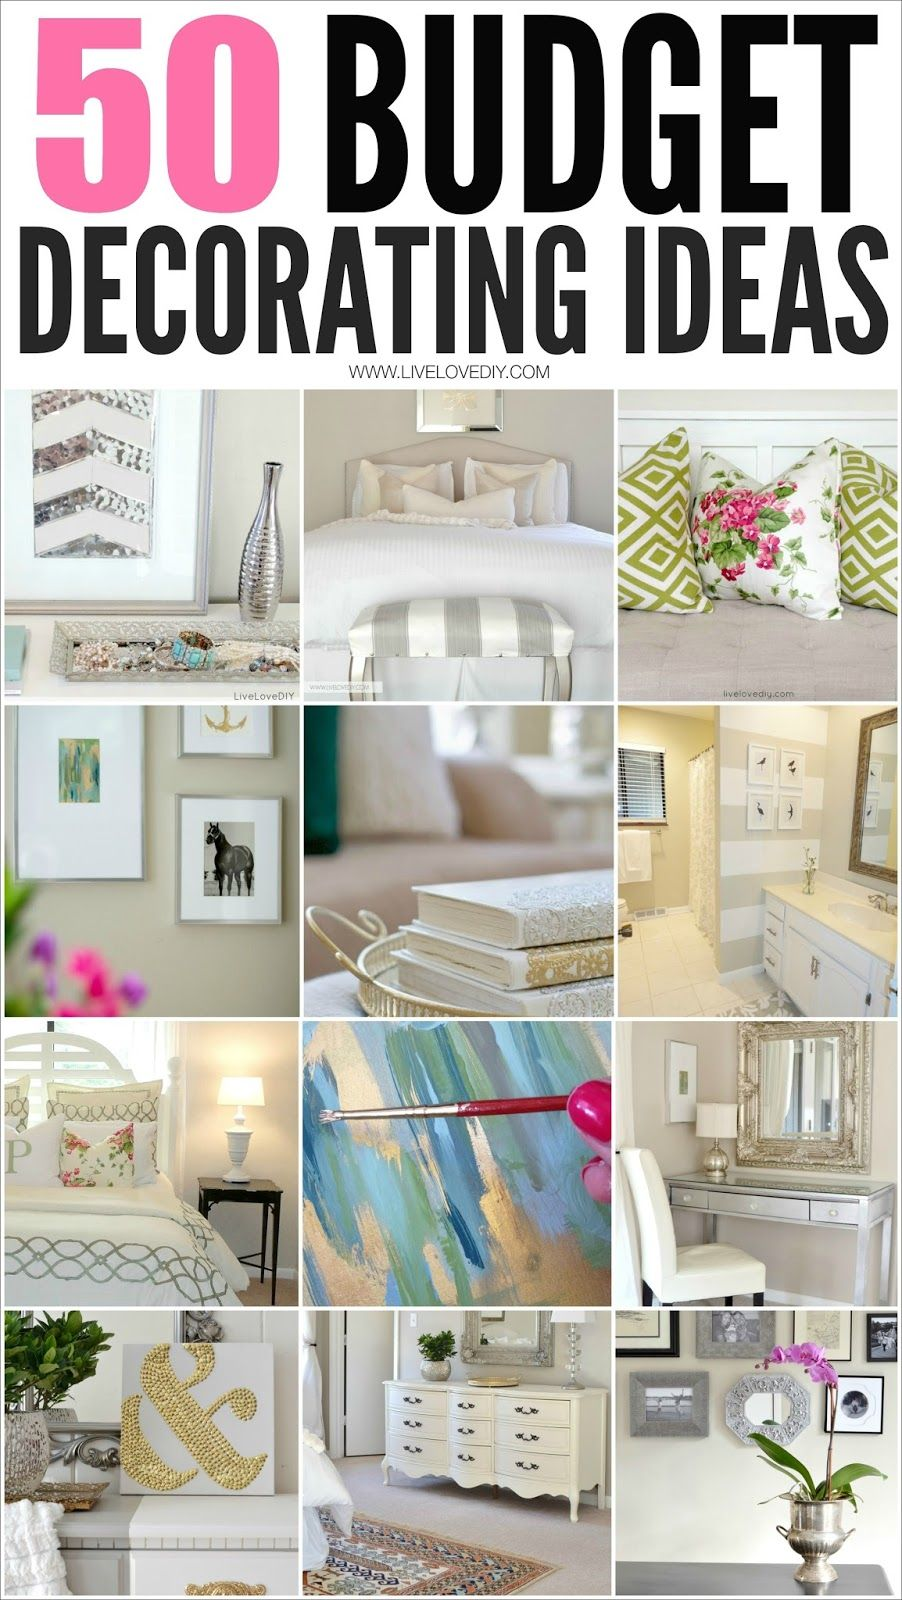 bedroom decorating ideas cheap. 50 Budget Decorating Tips You Should Know! Bedroom Ideas Cheap